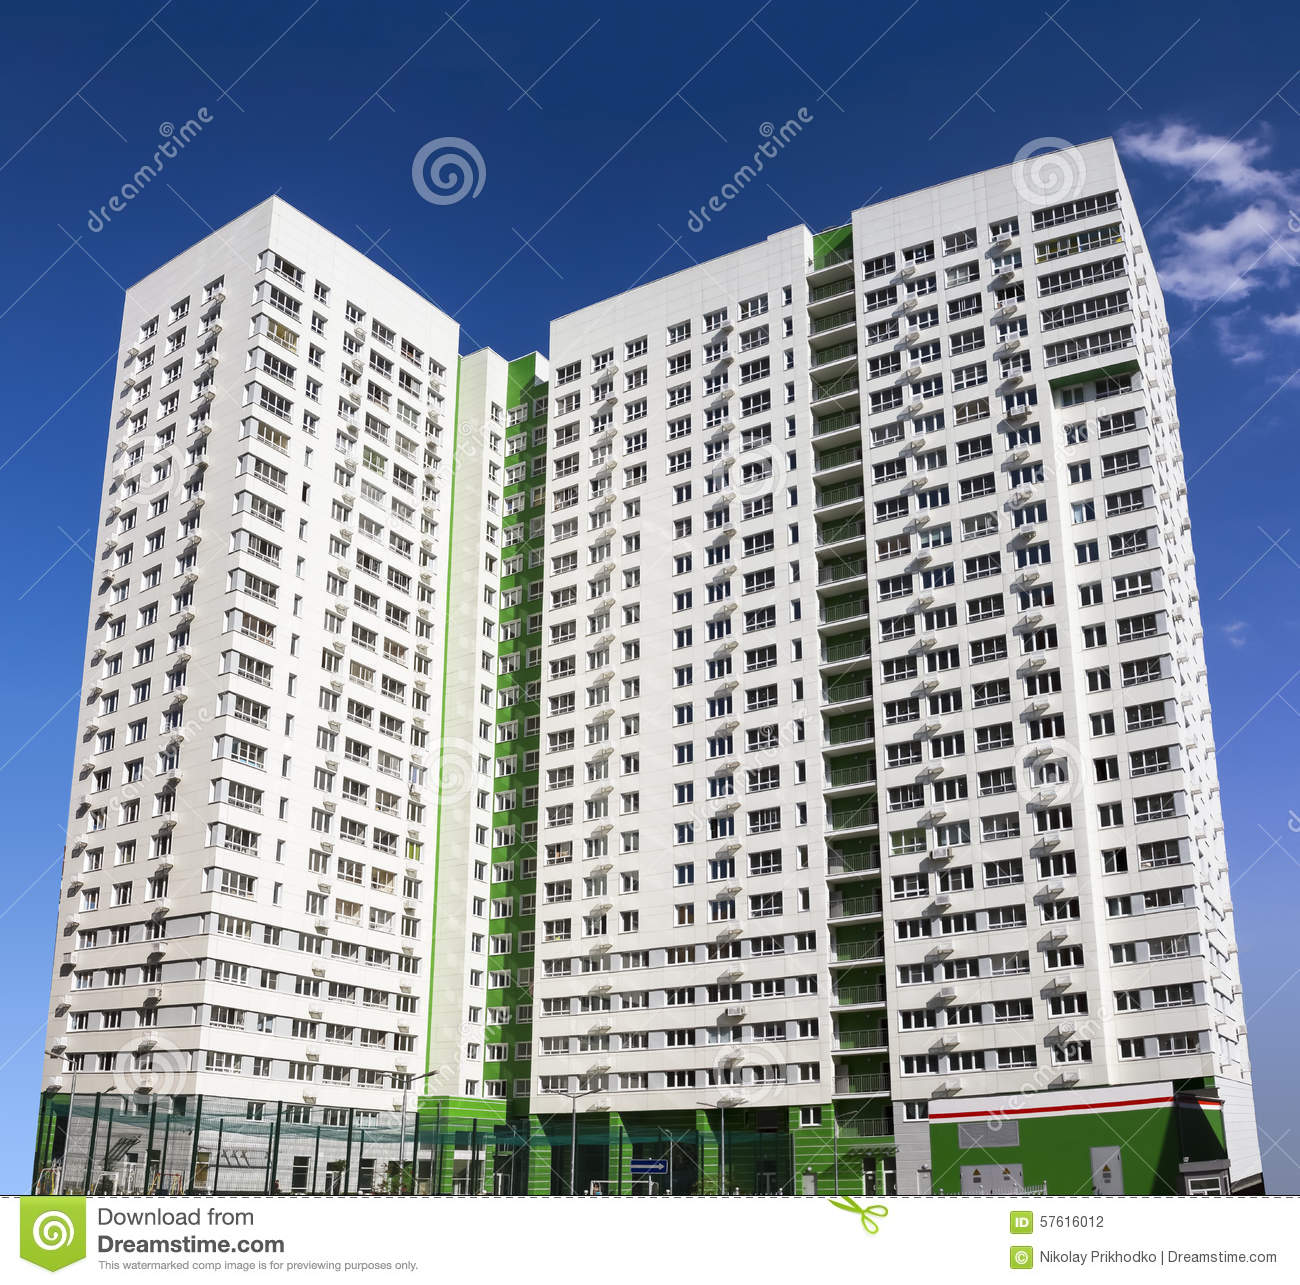 Apartment Block: Multistory New Modern Apartment Building Against The Blue